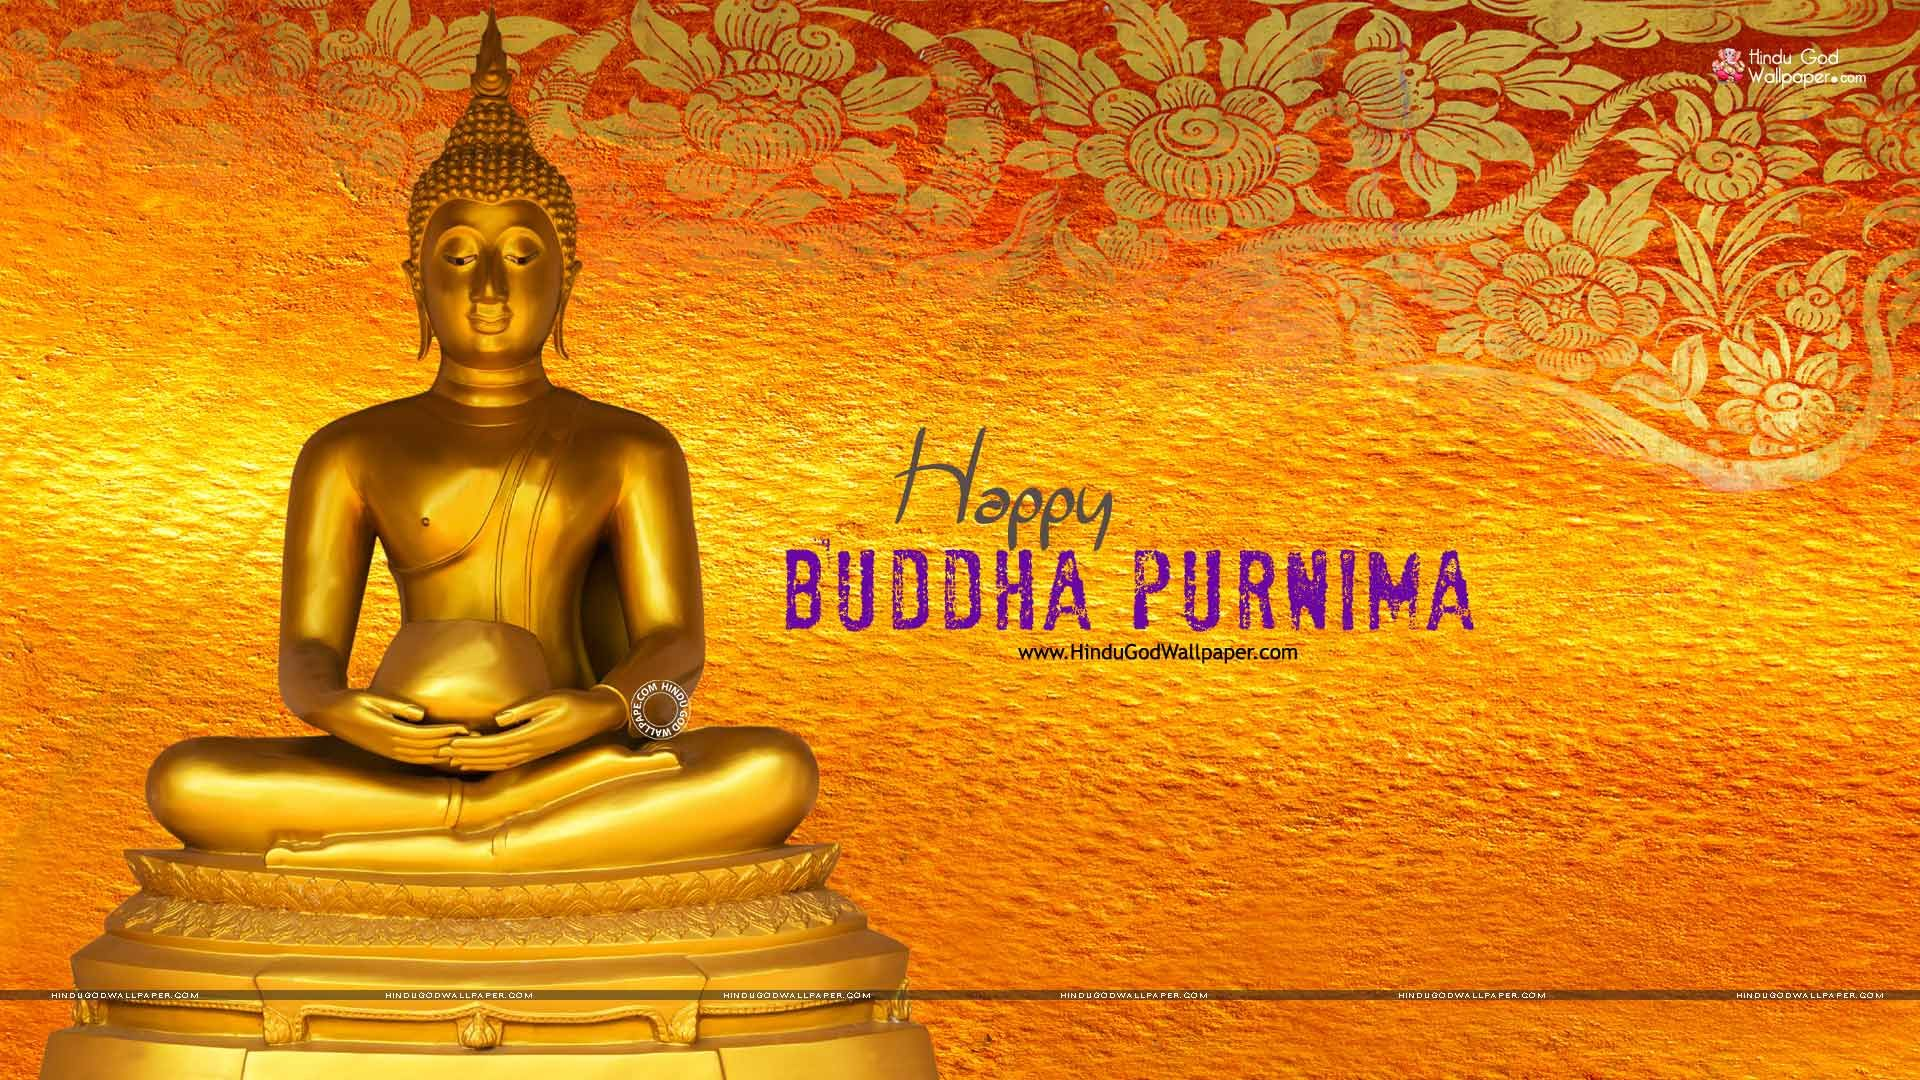 Lord Buddha Wallpaper HD, Best Lord Buddha HD Images - Excellent ...